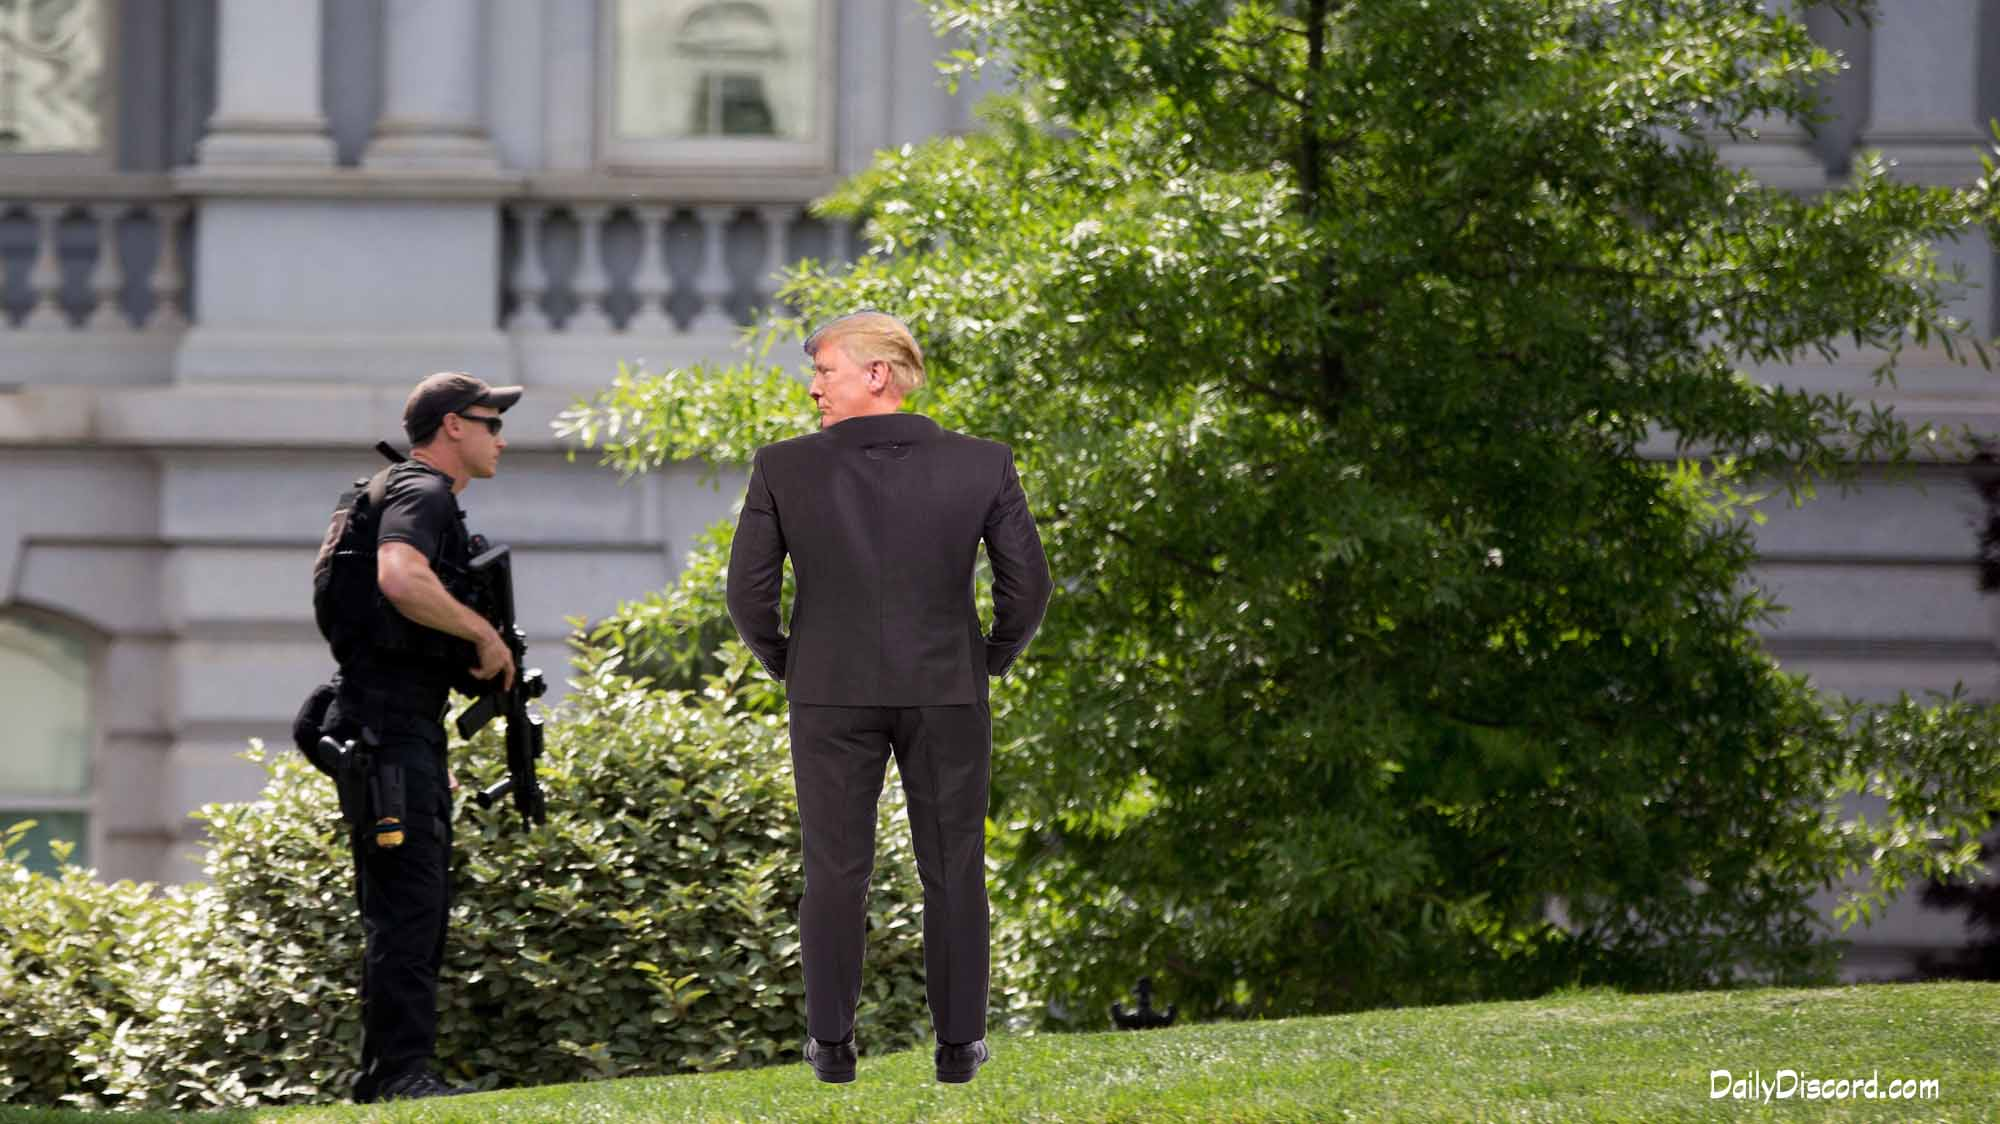 A Secret Service agent stands on the North Lawn at the White House in Washington, Friday, May 20, 2016, as the White House is placed on lockdown after there are reports of shots fired near West Executive Ave. and Pennsylvania Ave. (AP Photo/Andrew Harnik)